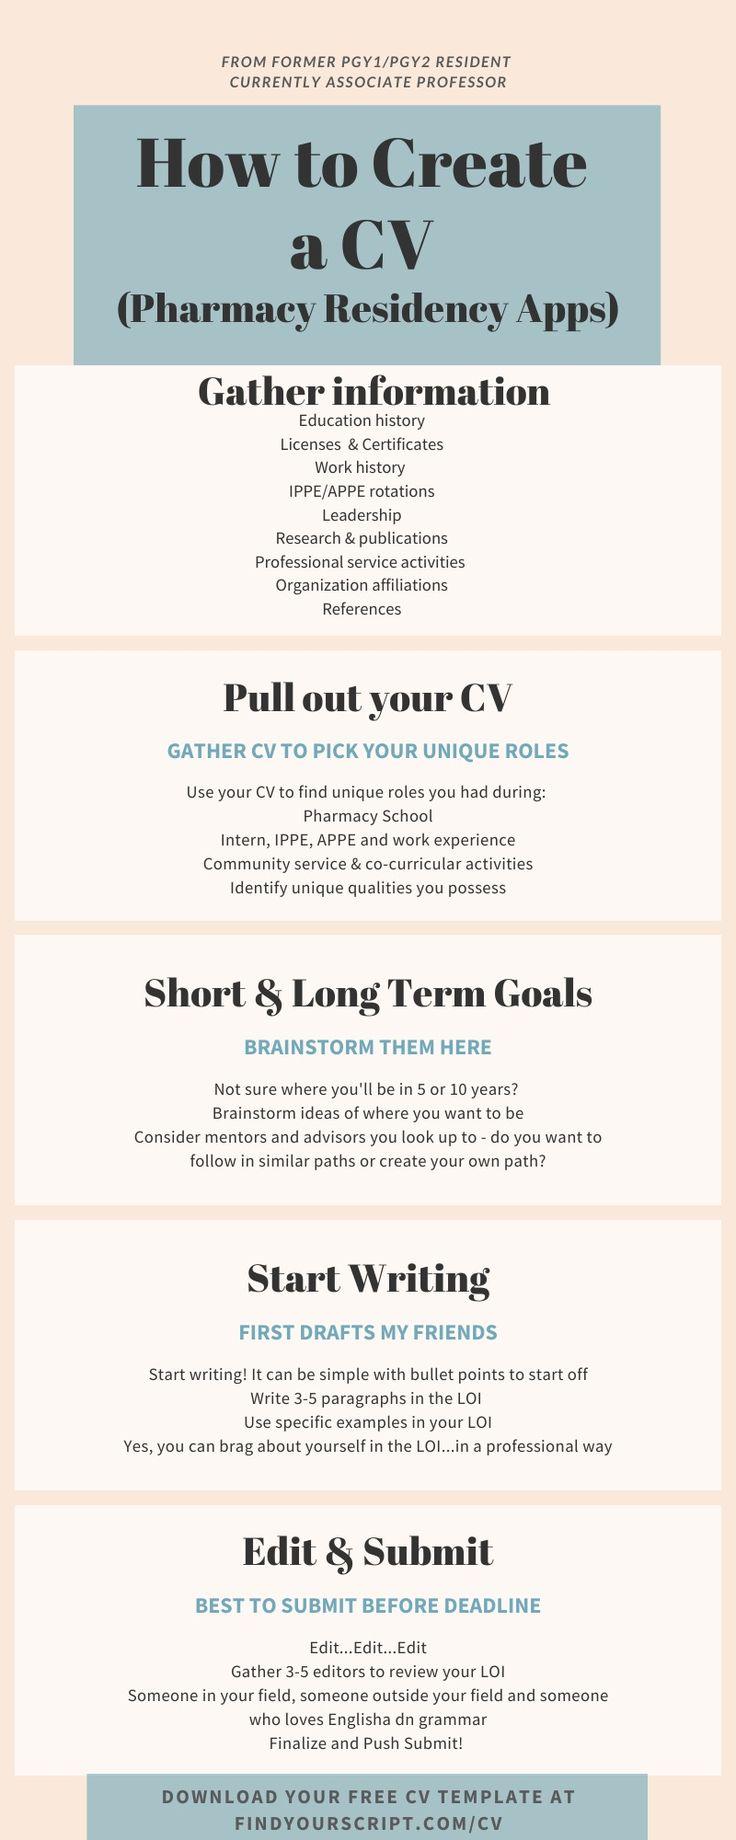 How to Create Curriculum Vitae (CV) with FREE template in